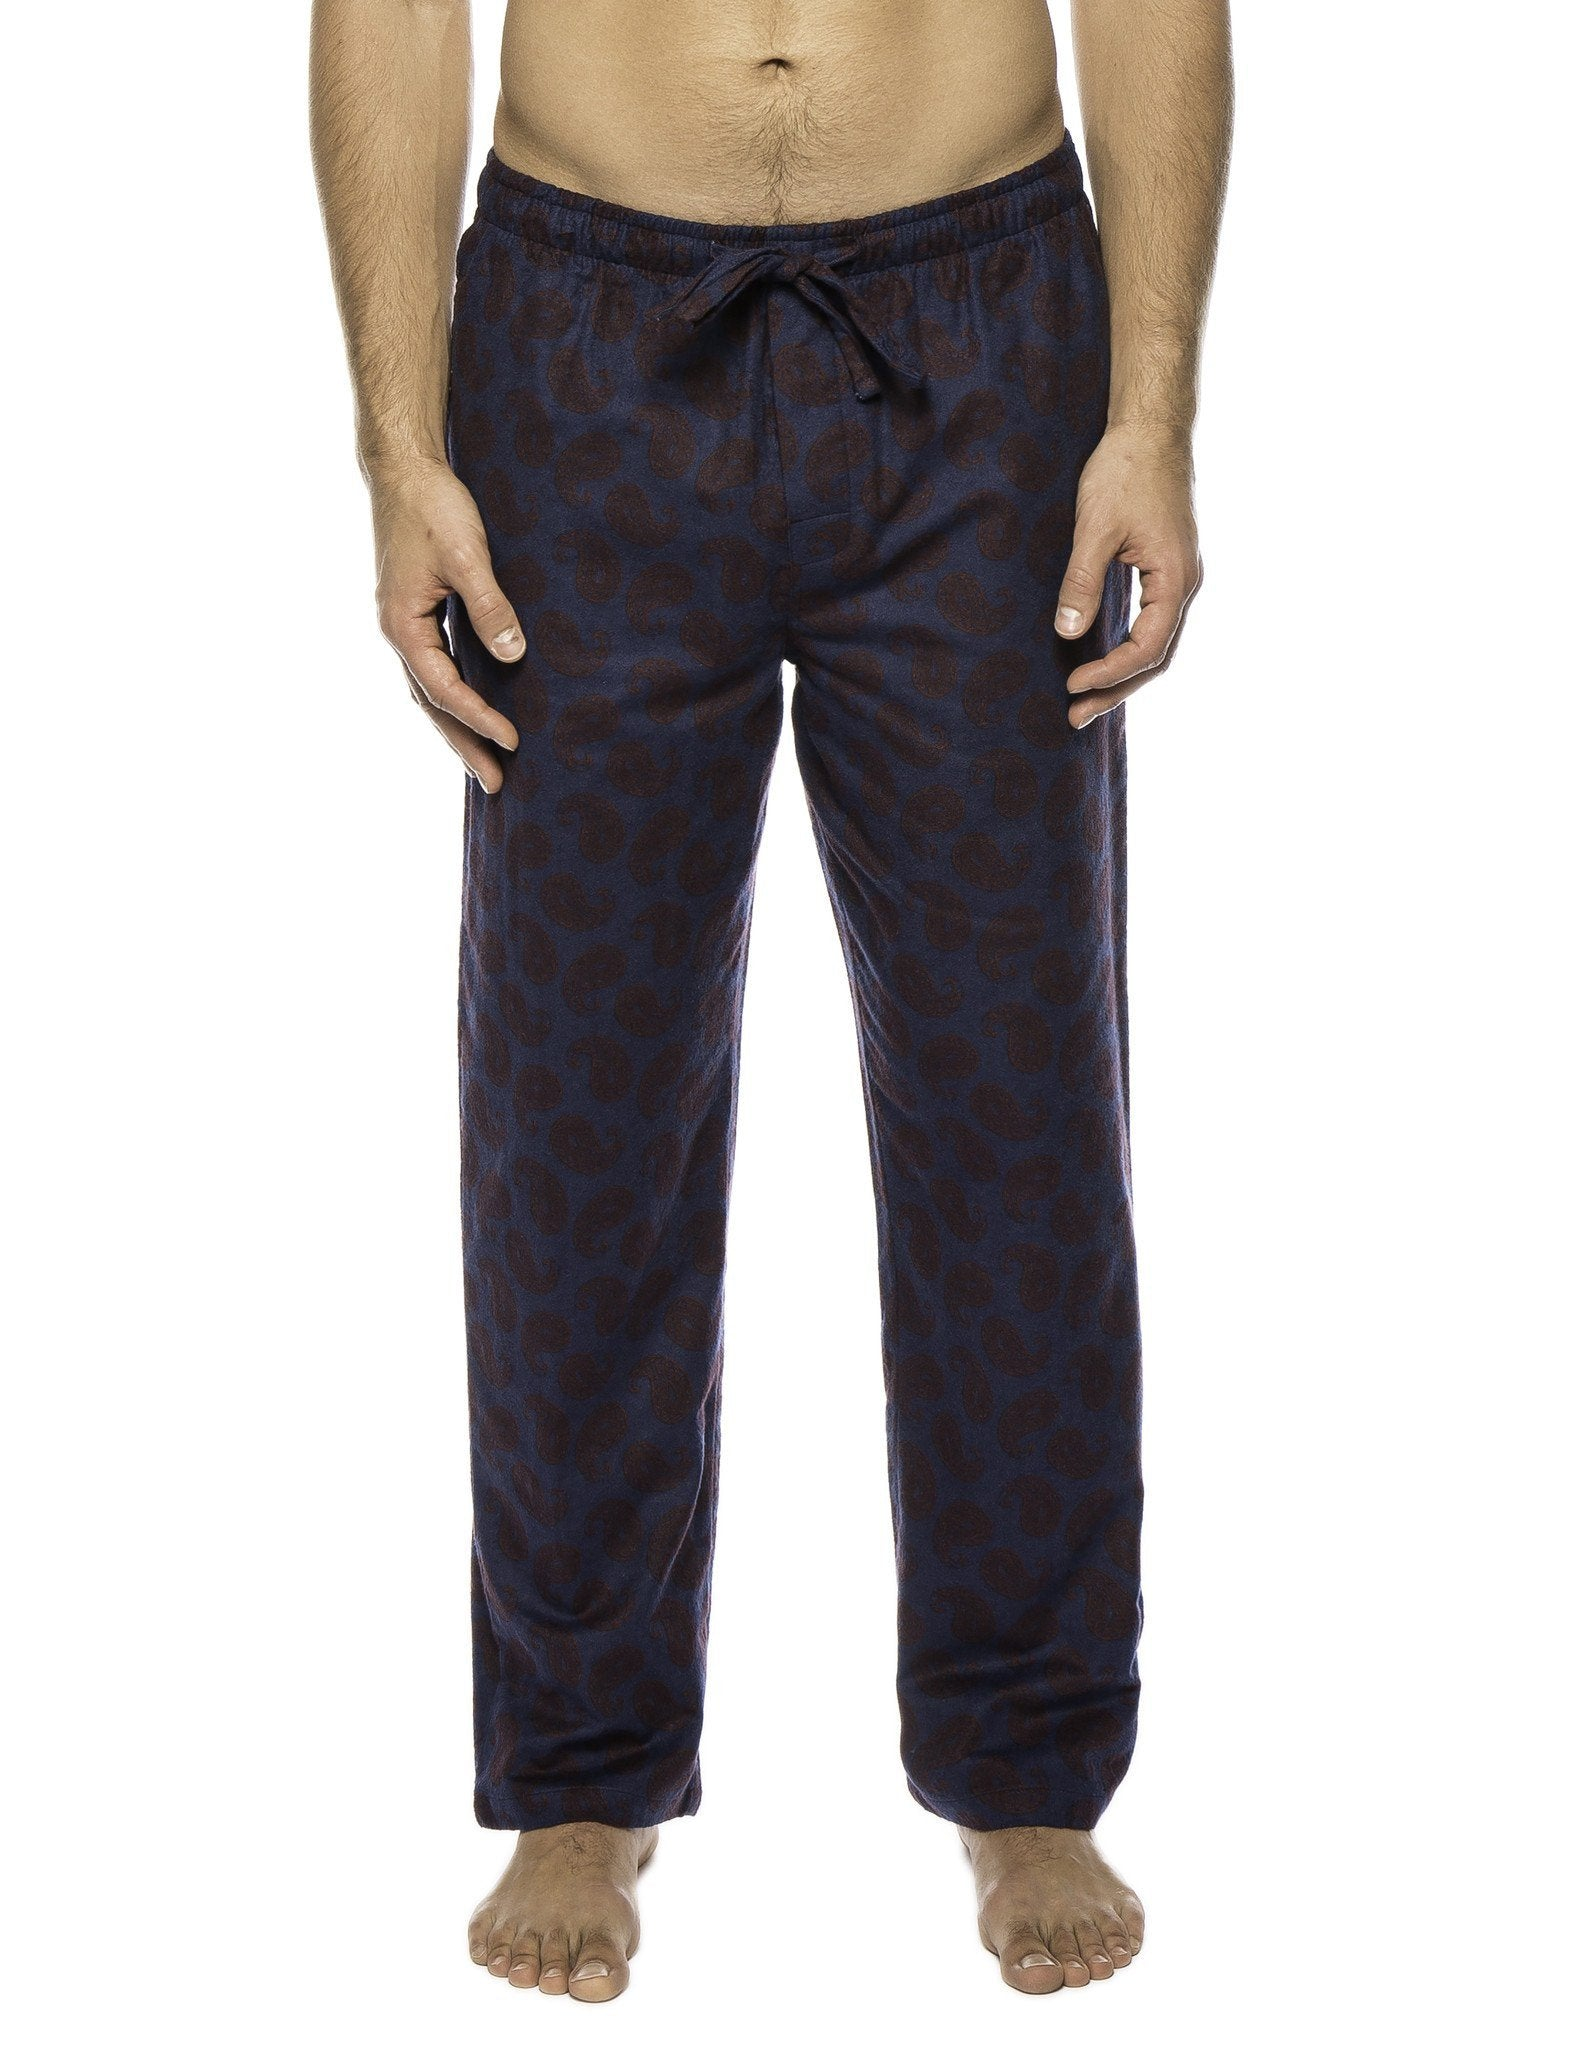 Men's 100% Cotton Flannel Lounge Pants - Paisley Navy/Brown